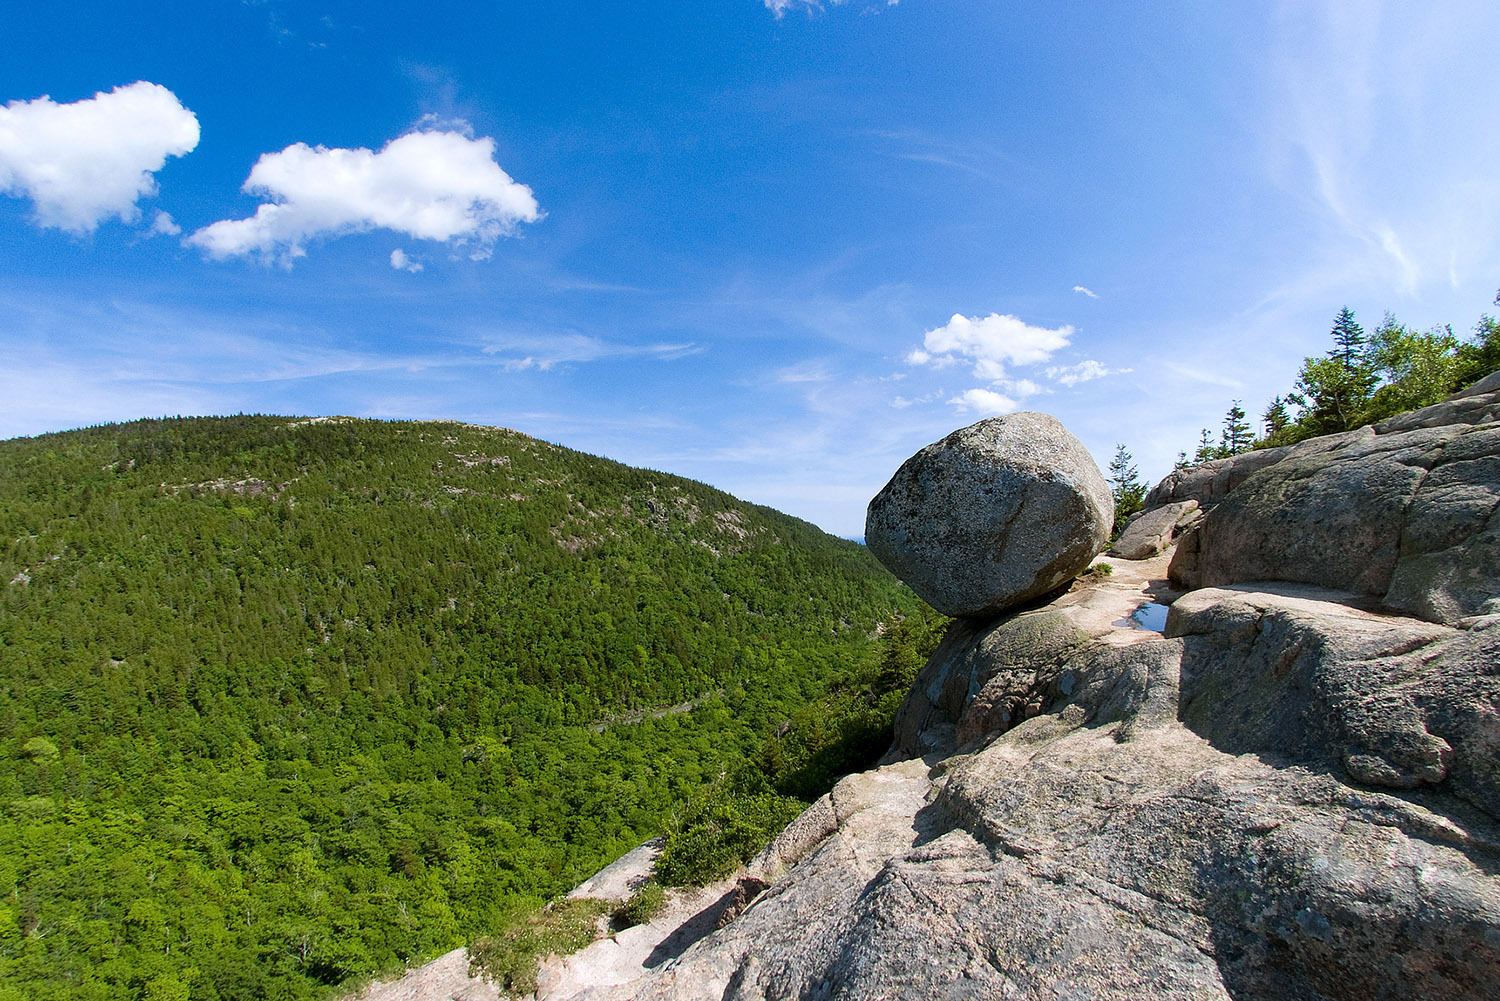 Balancing Rock - South Bubble Summit